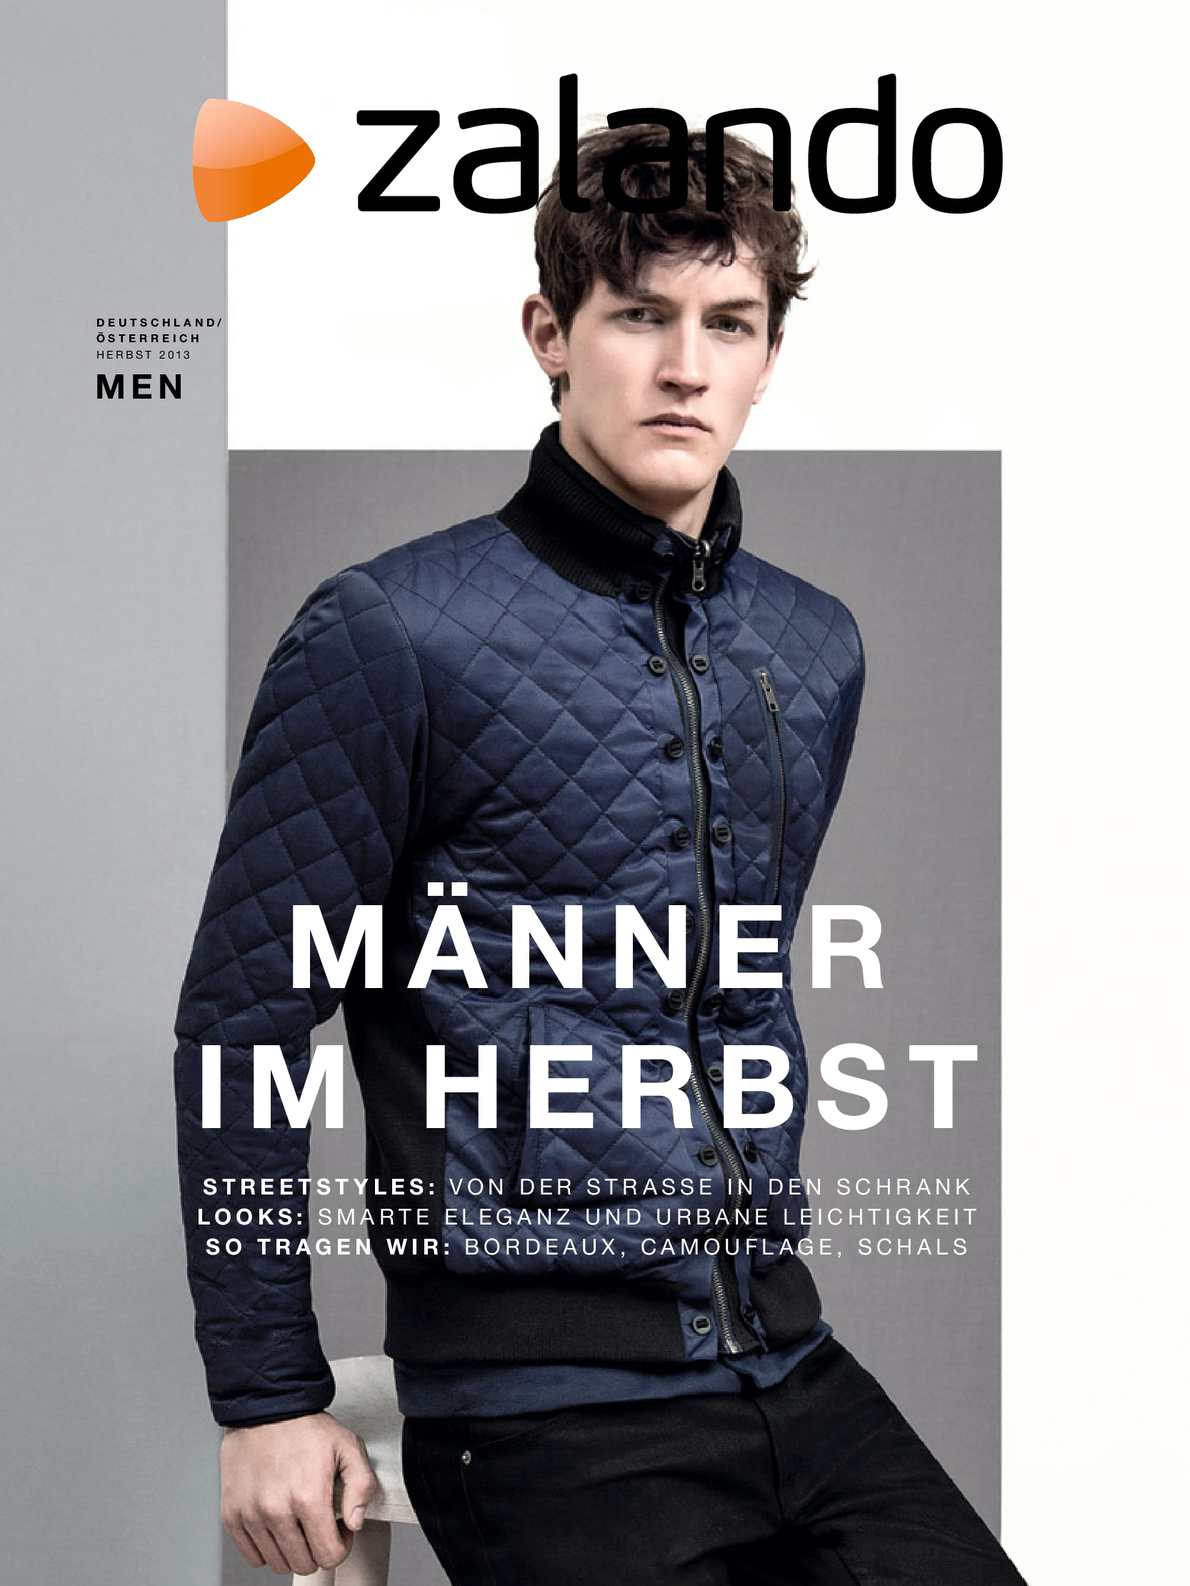 Pullover Männer Zalando Calaméo At Men Magazin 09 2013